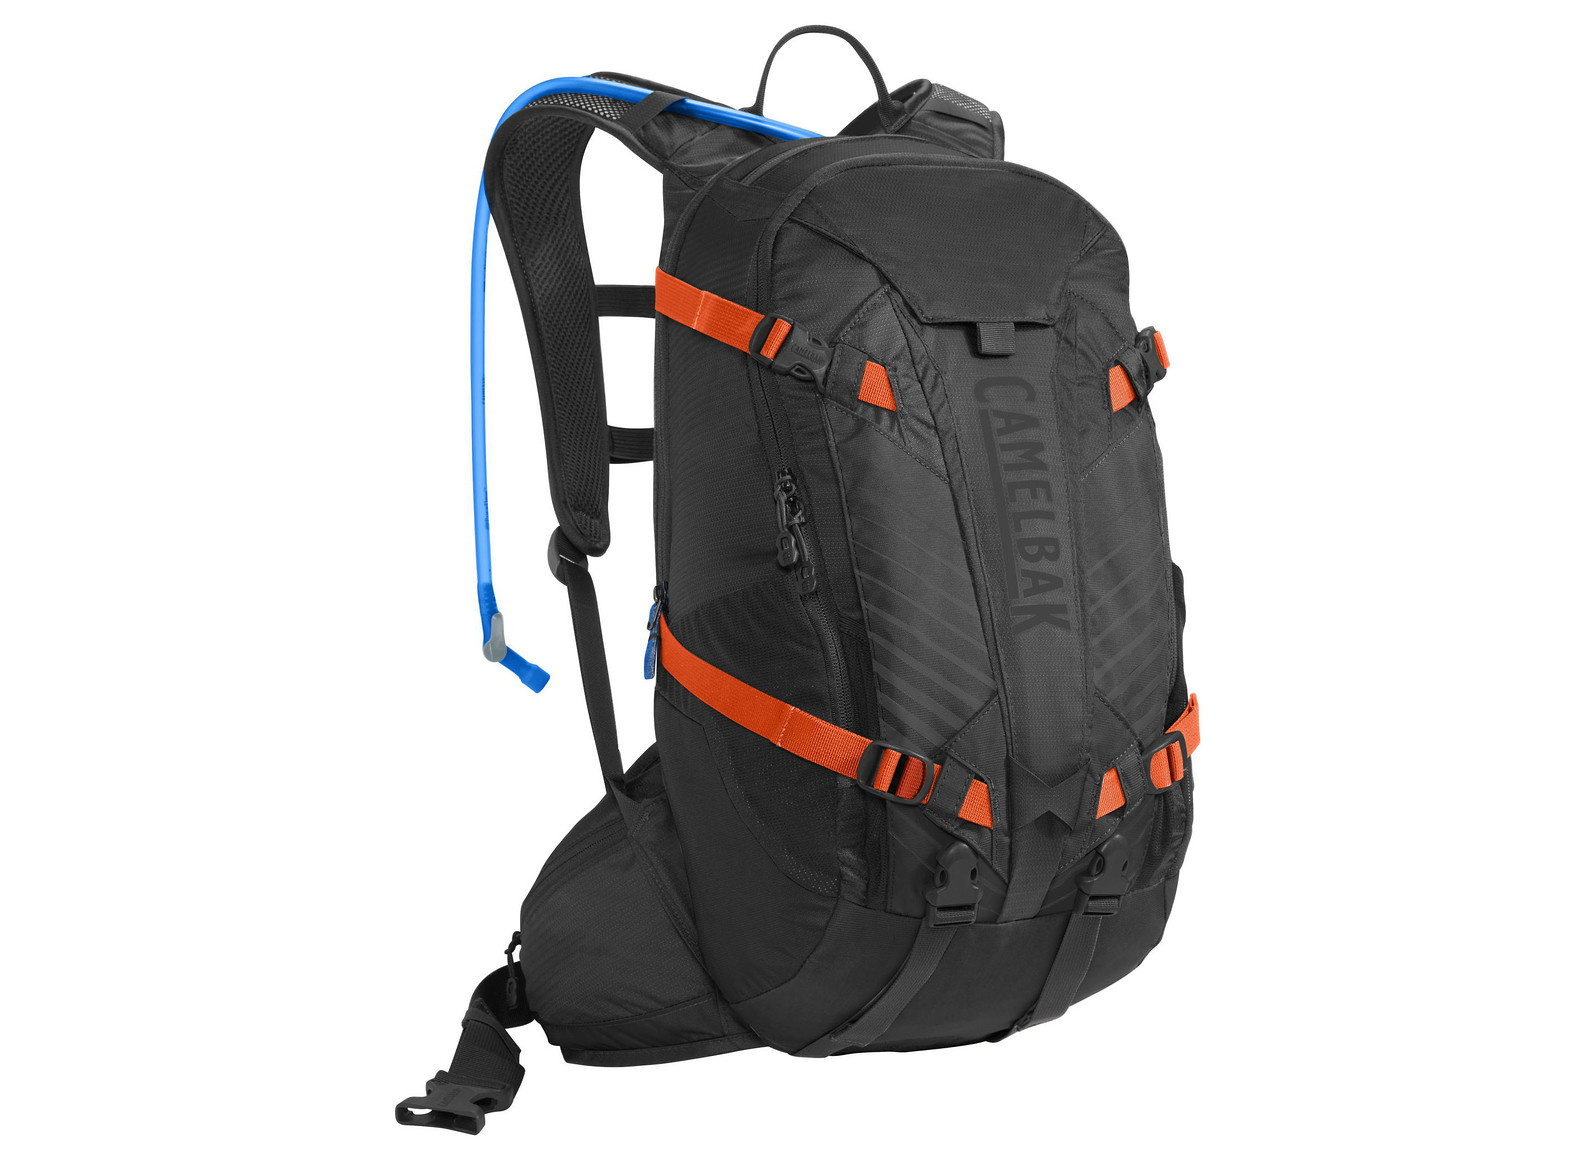 Camelbak K.U.DU. 18 100oz Hydration Pack